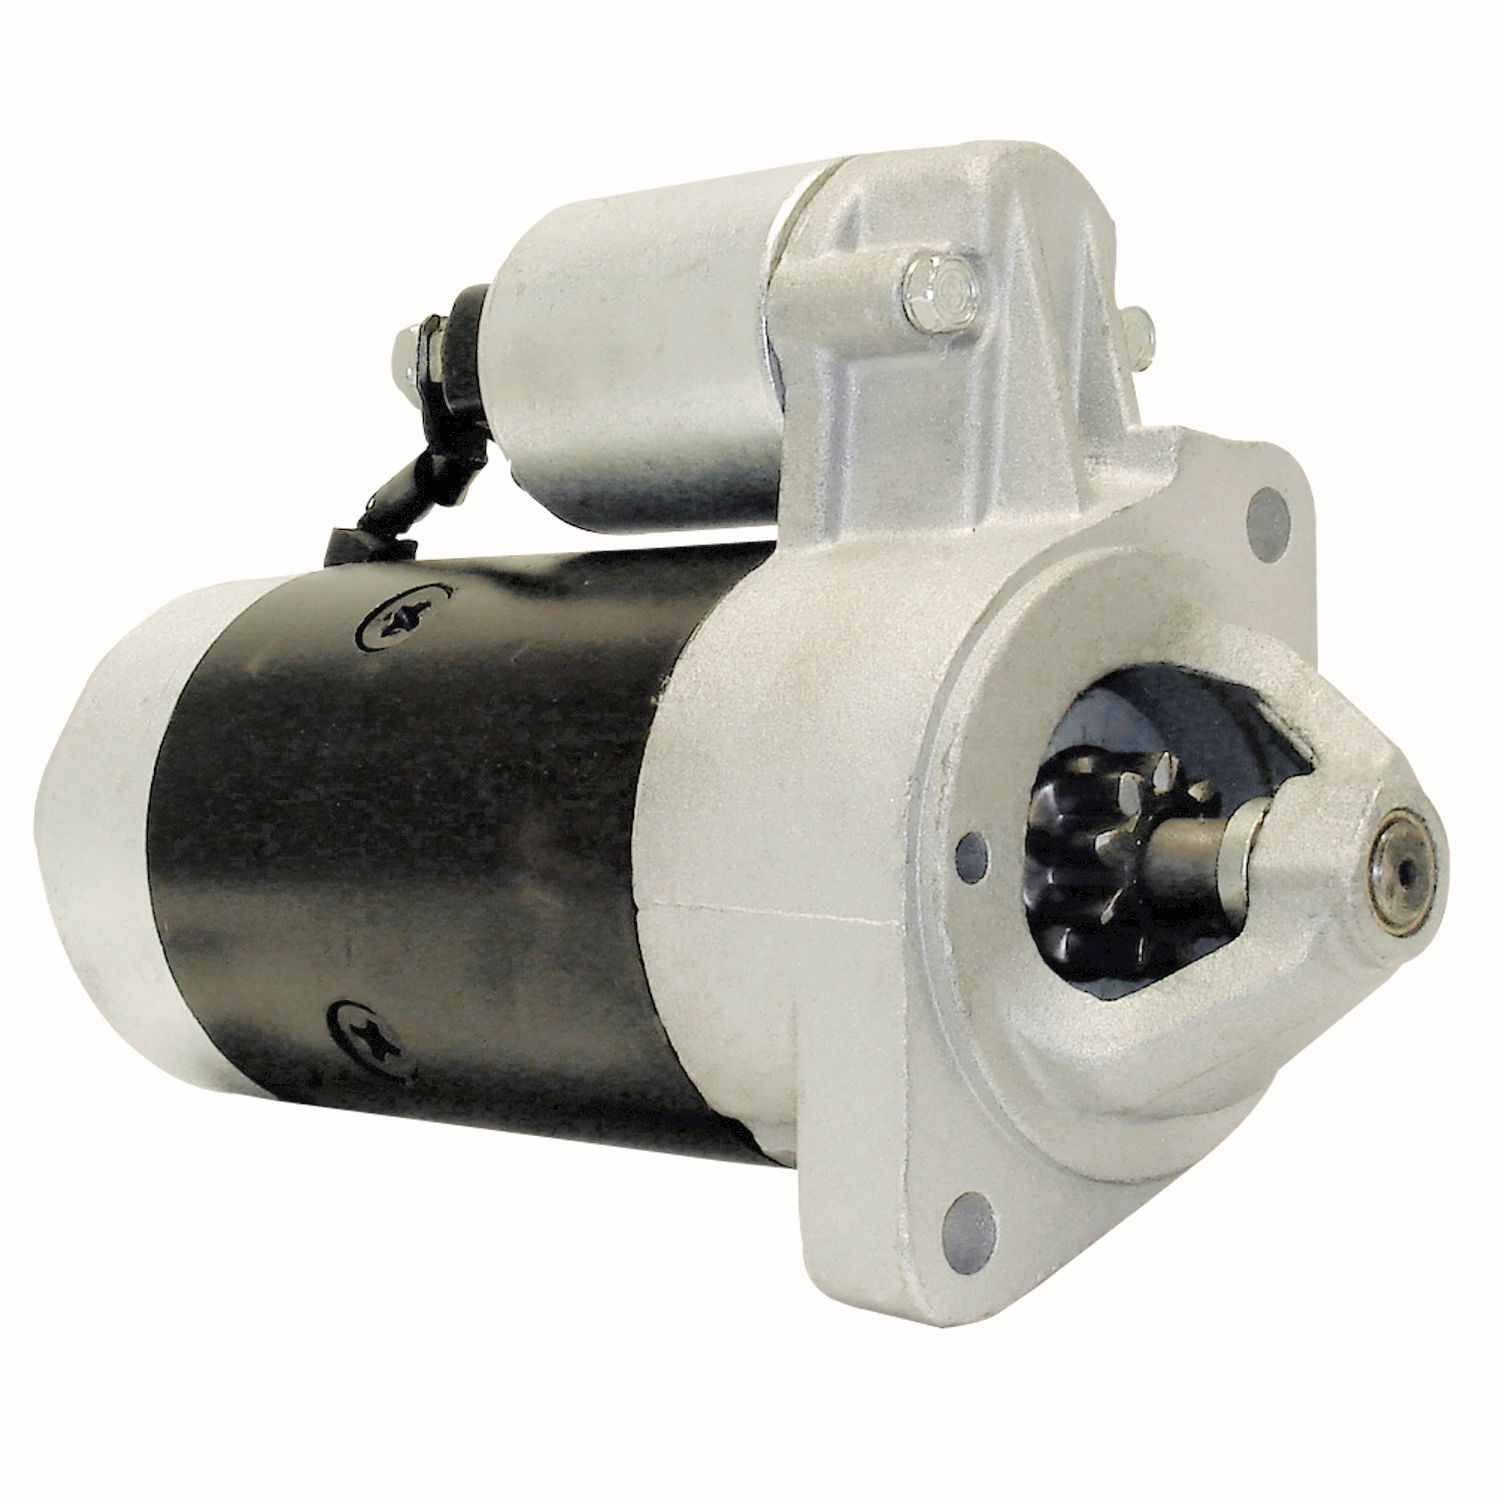 ACDELCO GOLD/PROFESSIONAL - Reman Starter Motor - DCC 336-1256